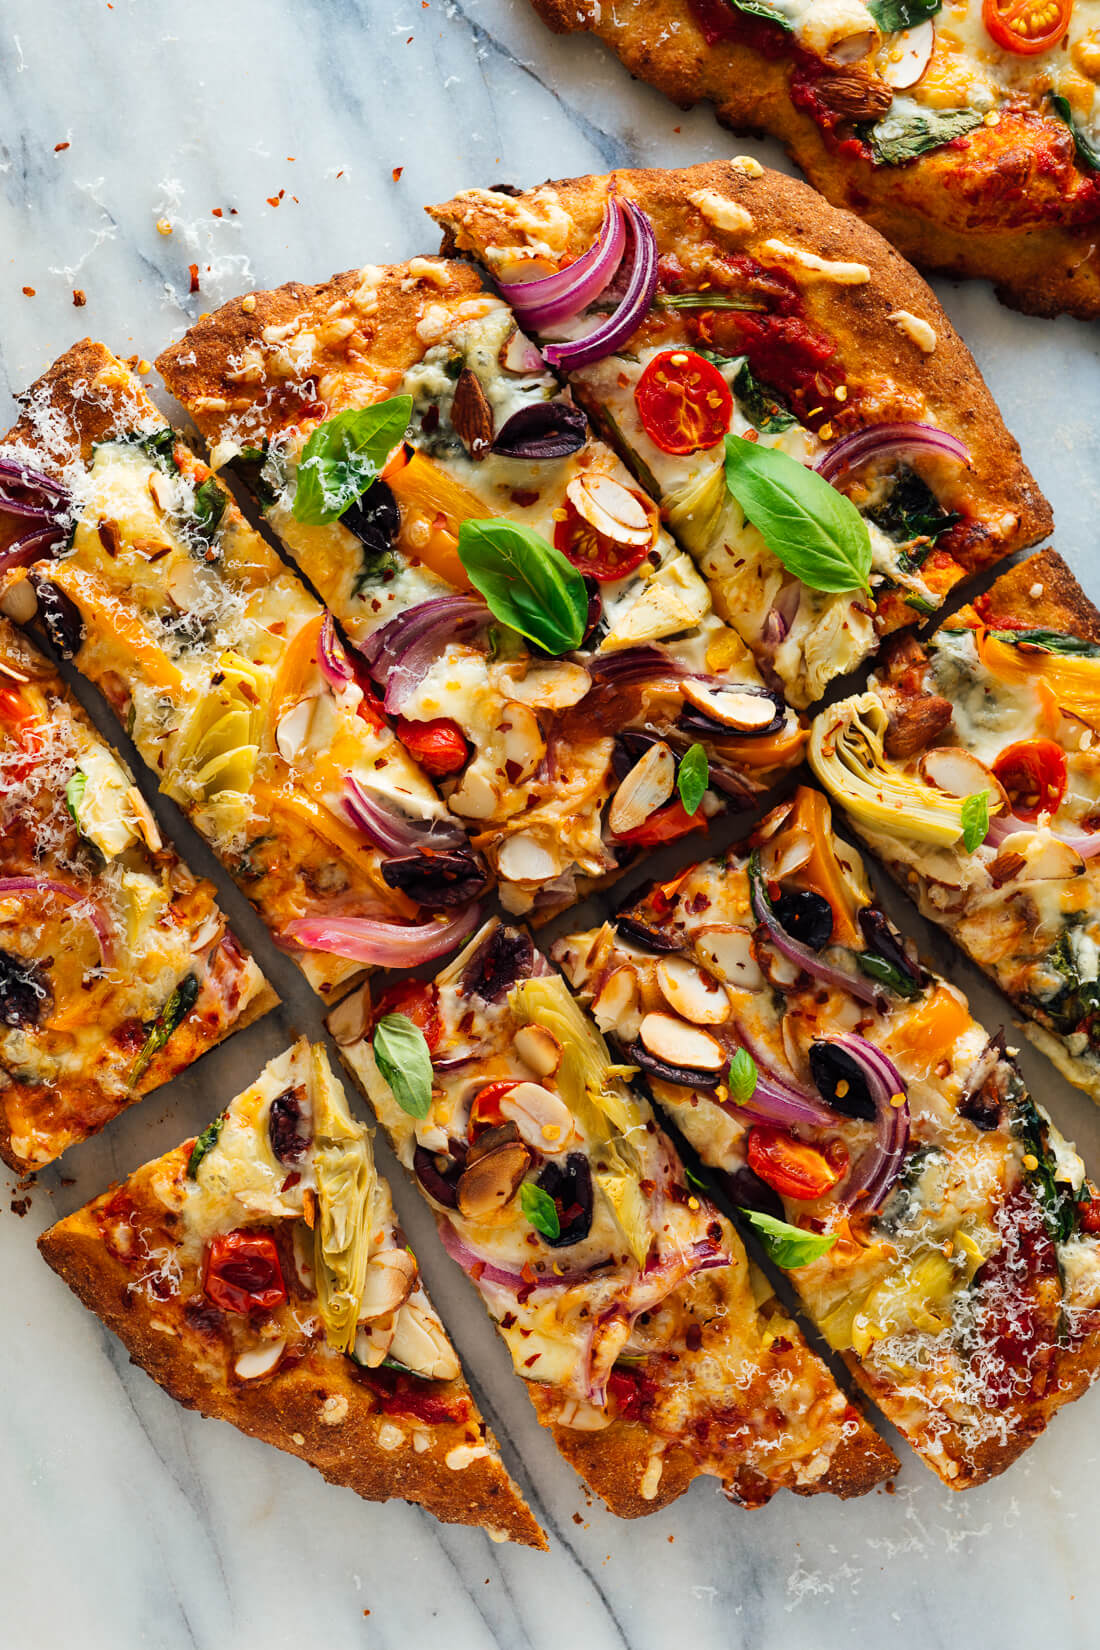 Resep Pizza Oven : resep, pizza, Easiest, Whole, Wheat, Pizza, Dough, Recipe, Cookie